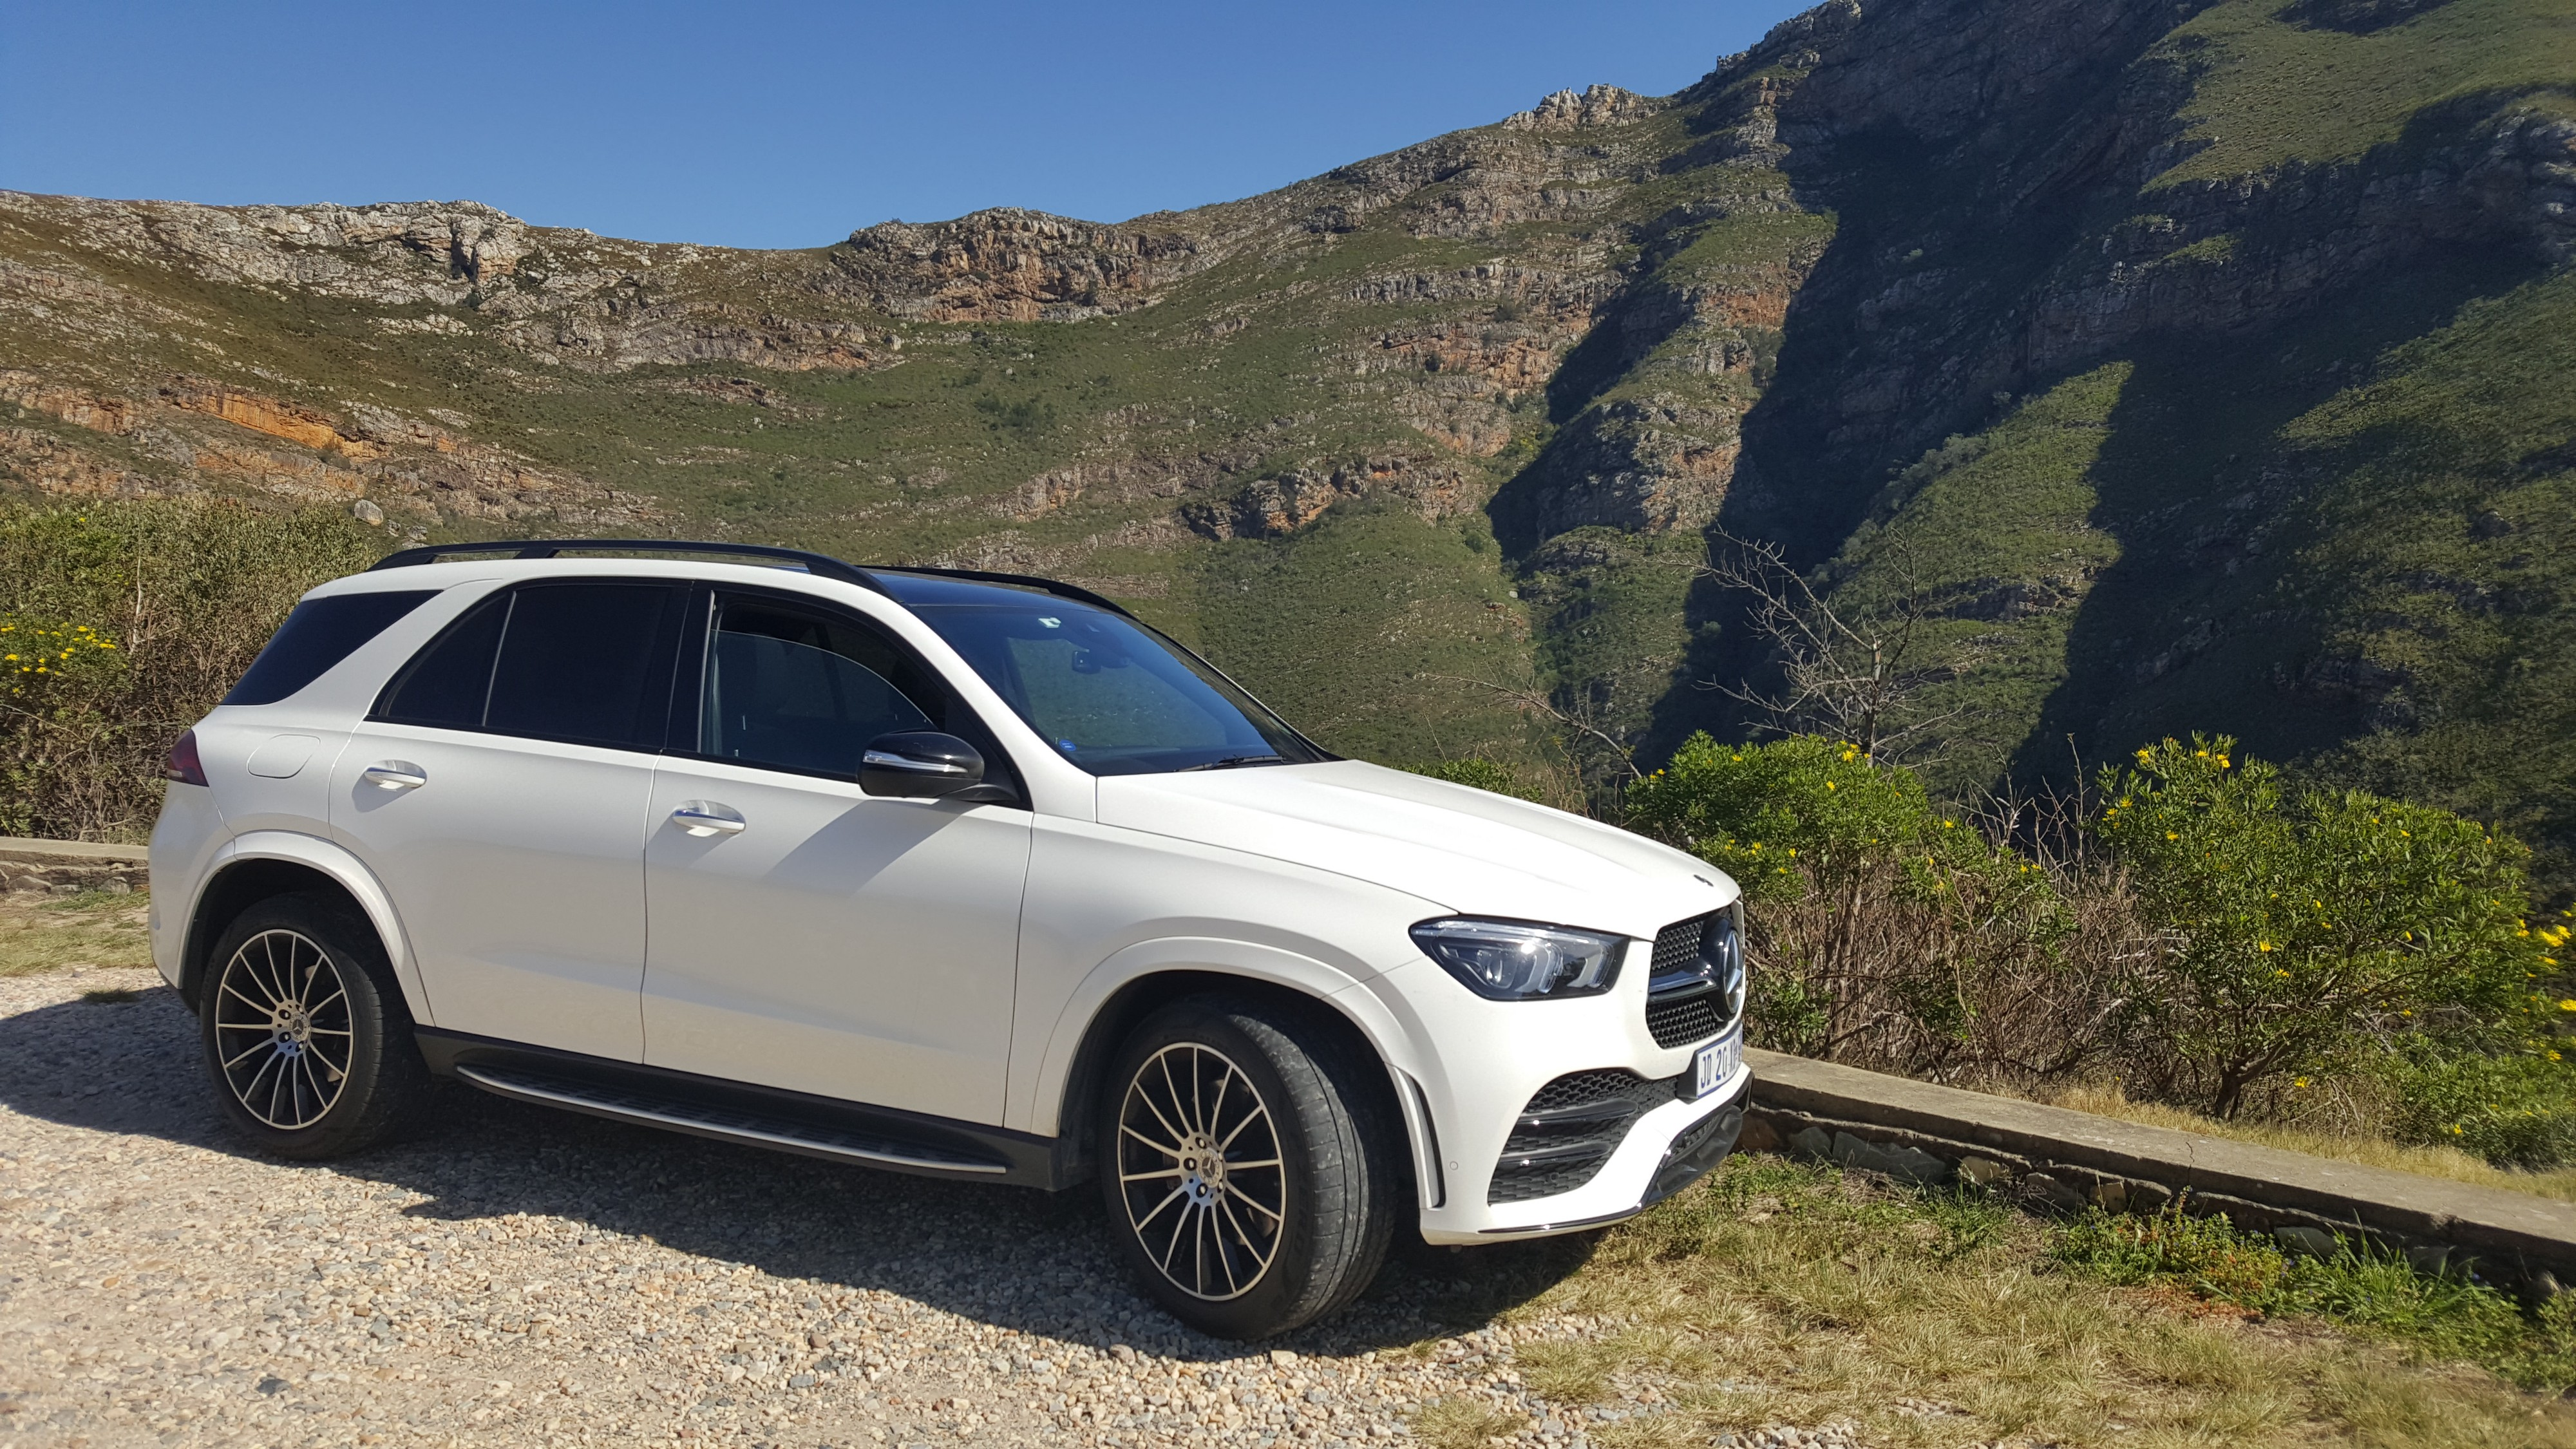 Mercedes-Benz GLE 400d against a mountain background